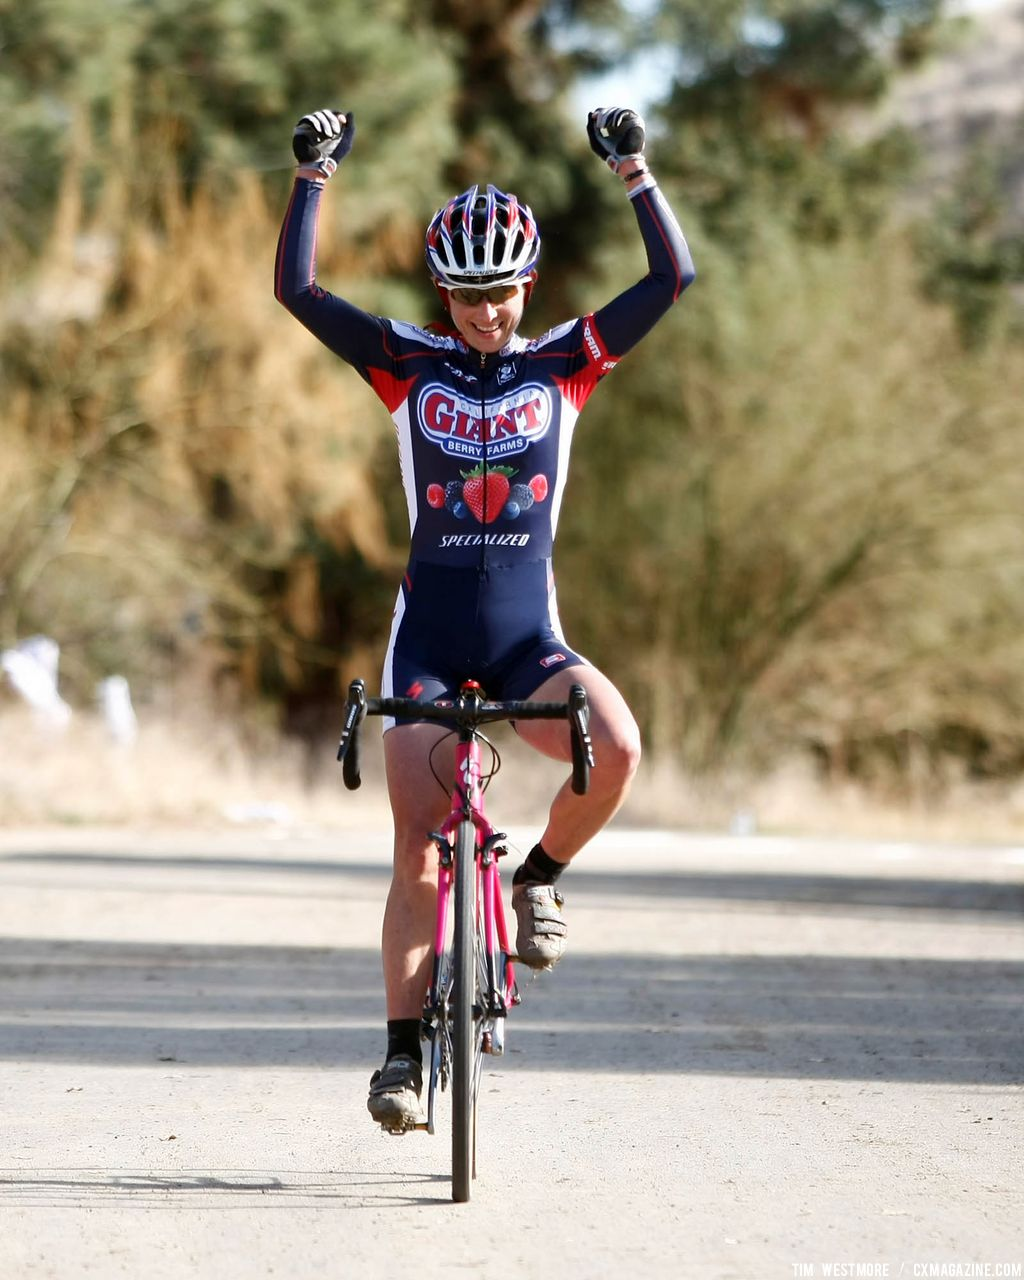 Gina Hall (Cal Giant/Specialized) finishes well ahead of second place © Tim Westmore